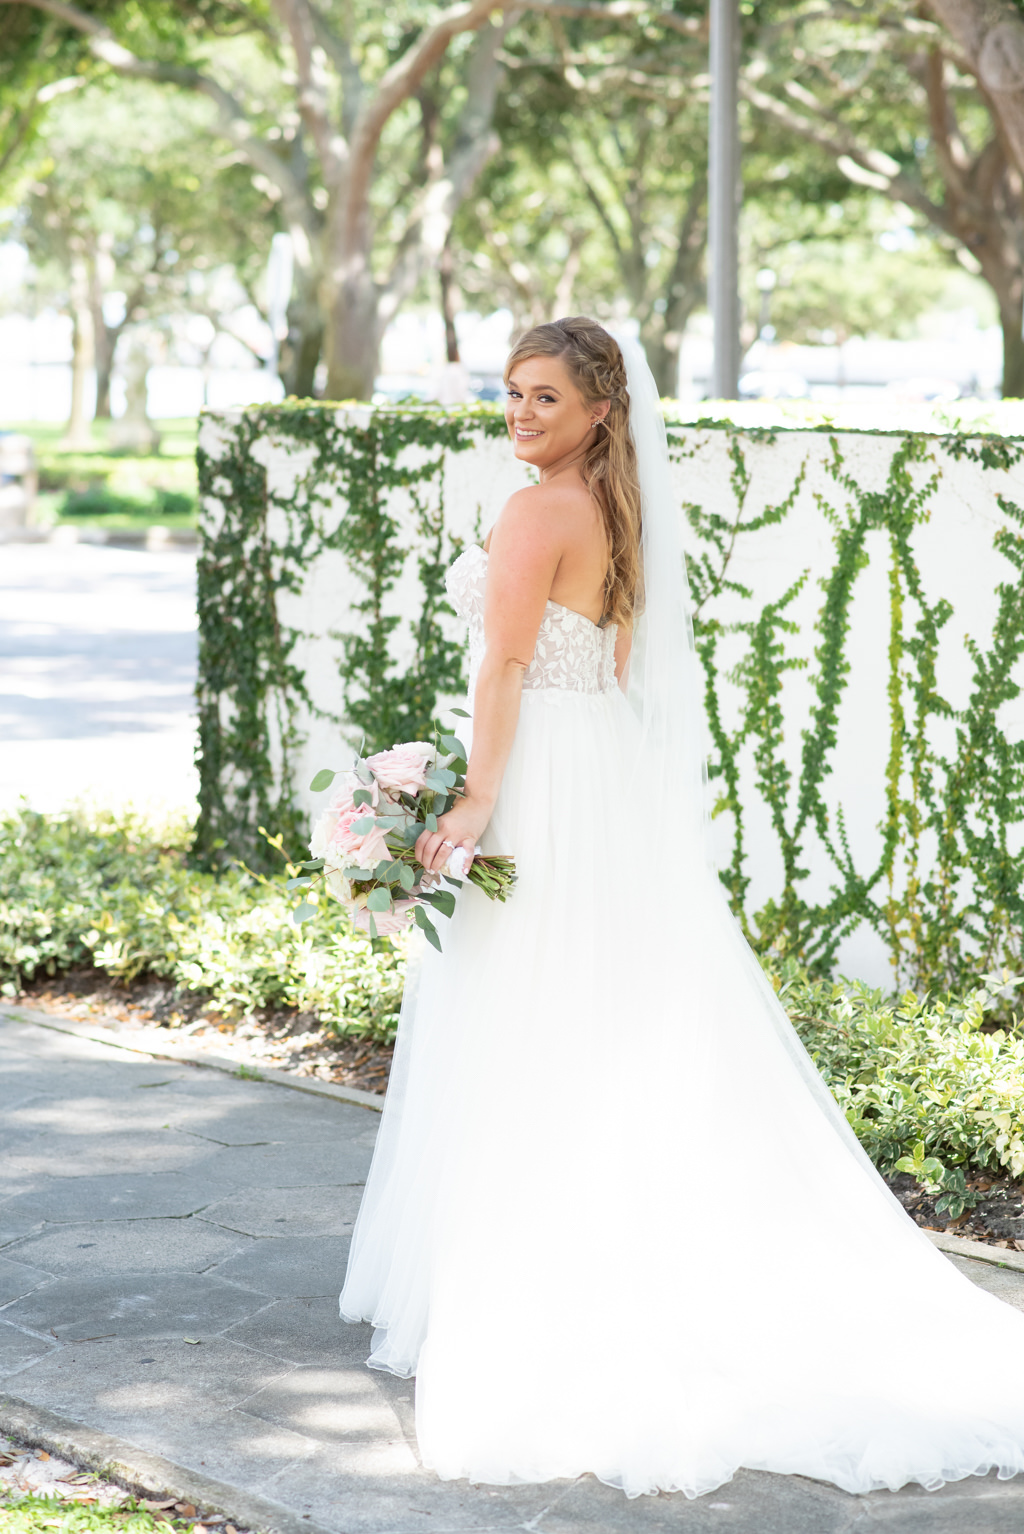 Classic Florida Bride Outdoor Wedding Portrait with Blush Pink Floral and Greenery Floral Bouquet Wearing A-Line Justin Alexander Floral Embellished Bodice Sweetheart Strapless Tulle Skirt Wedding Dress   Tampa Bay Wedding Planner Coastal Coordinating   St. Pete Boutique Hotel and Wedding Venue The Birchwood